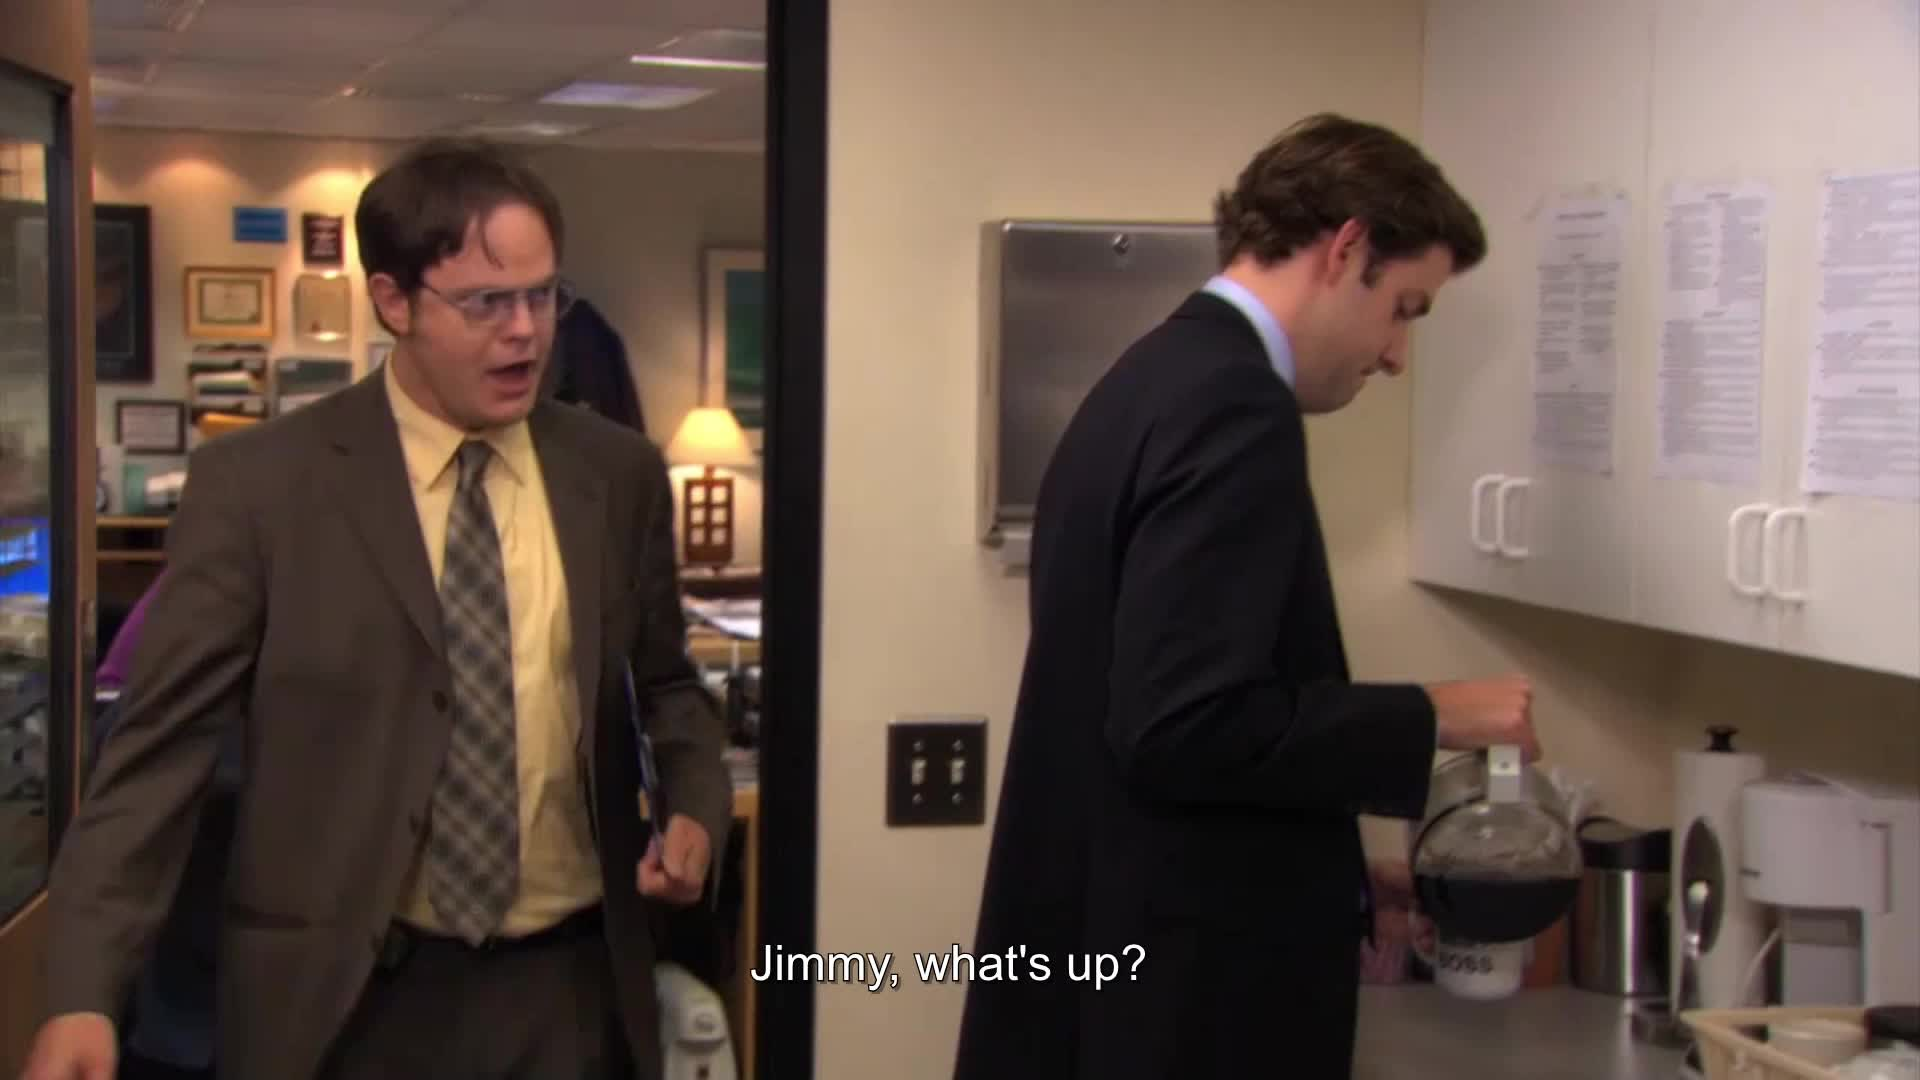 rainn wilson, The.Office.US.S06E12.720p.HDTV.X264-MRSK.mkv[Subtitle] - GOM Player 02-05-2018 19 44 14 1 GIFs